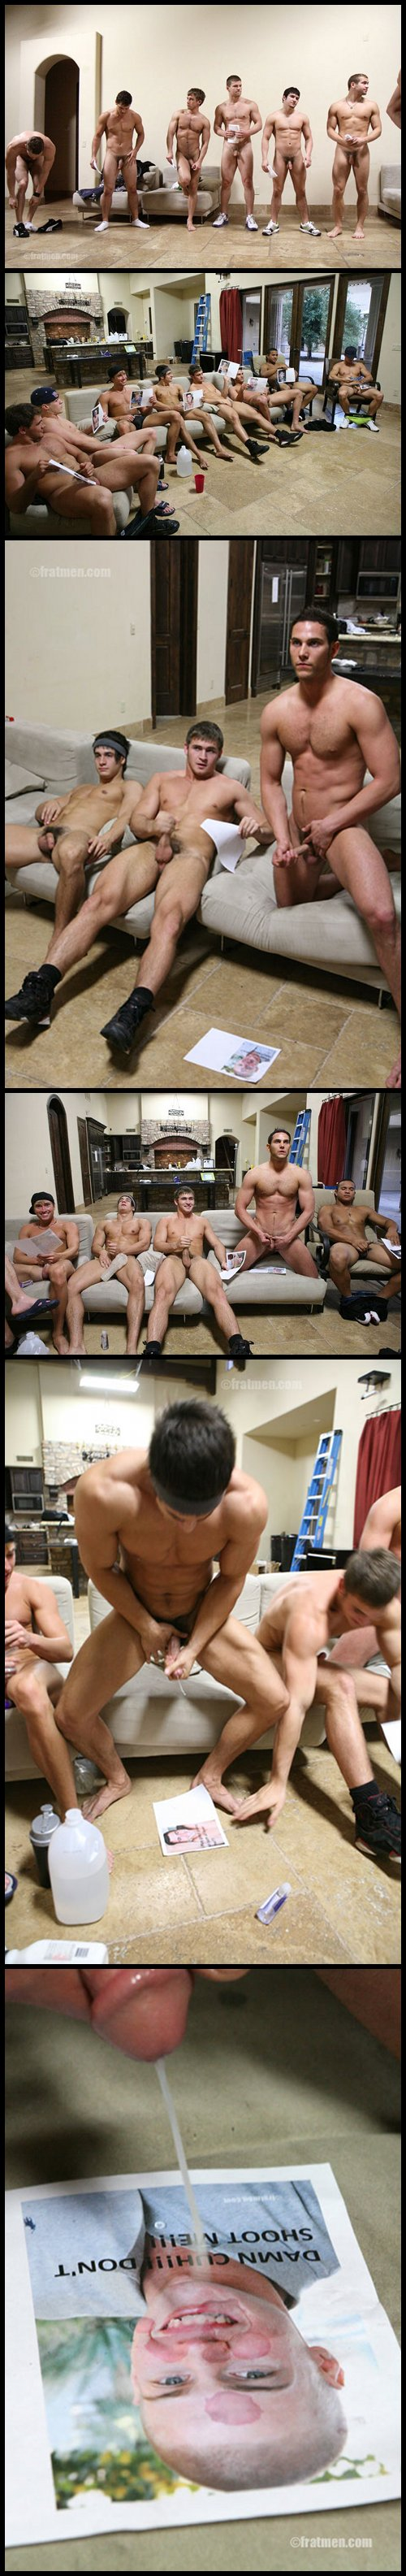 Frat Men Jerk Off Together